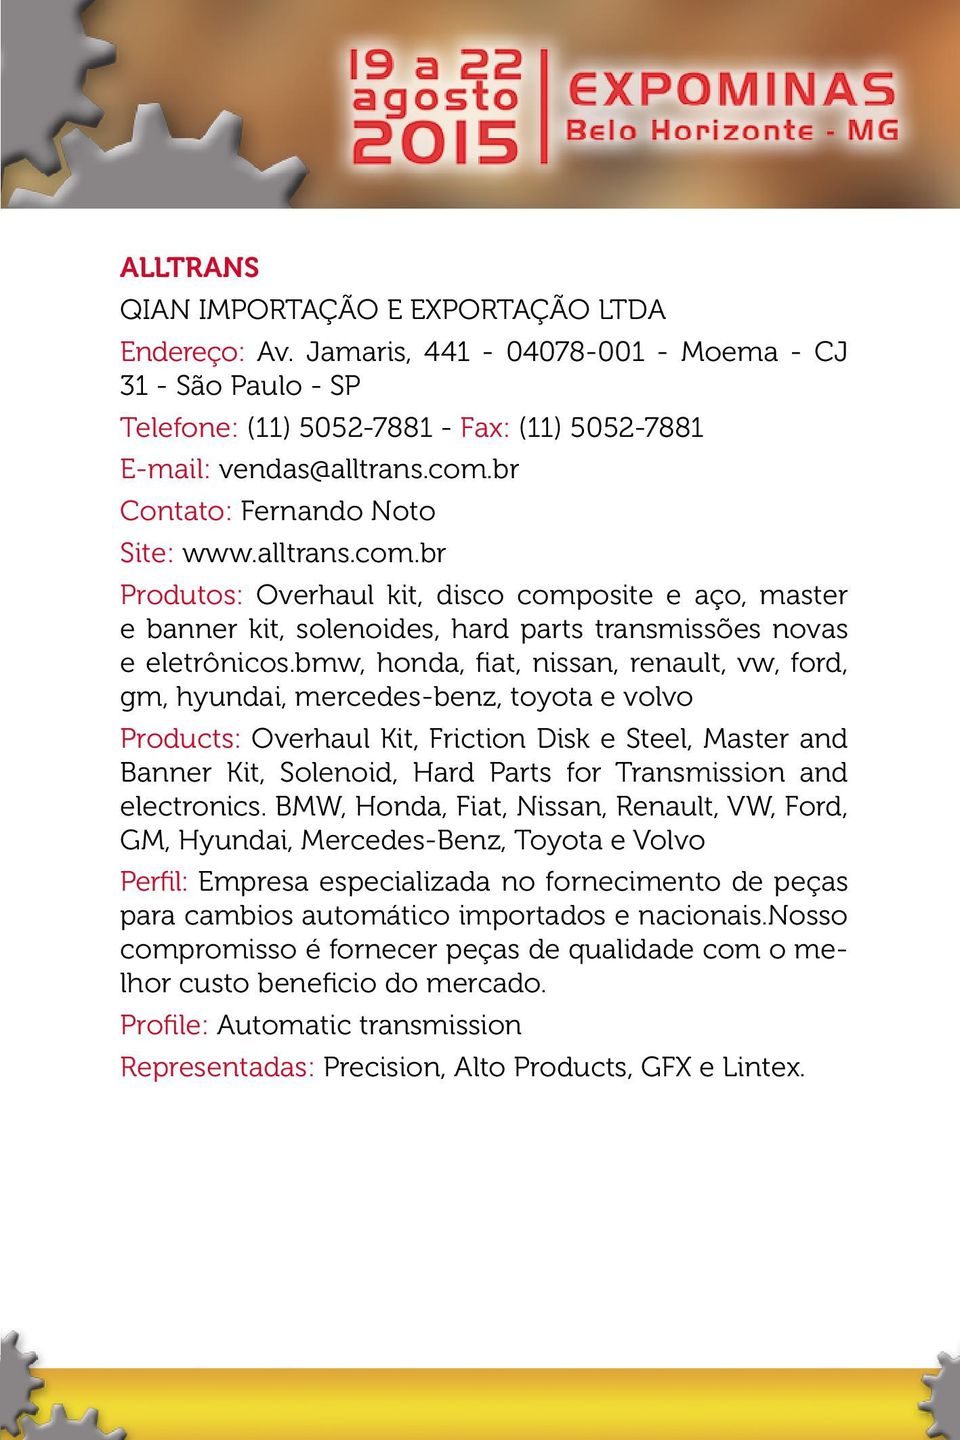 bmw, honda, fiat, nissan, renault, vw, ford, gm, hyundai, mercedes-benz, toyota e volvo Products: Overhaul Kit, Friction Disk e Steel, Master and Banner Kit, Solenoid, Hard Parts for Transmission and